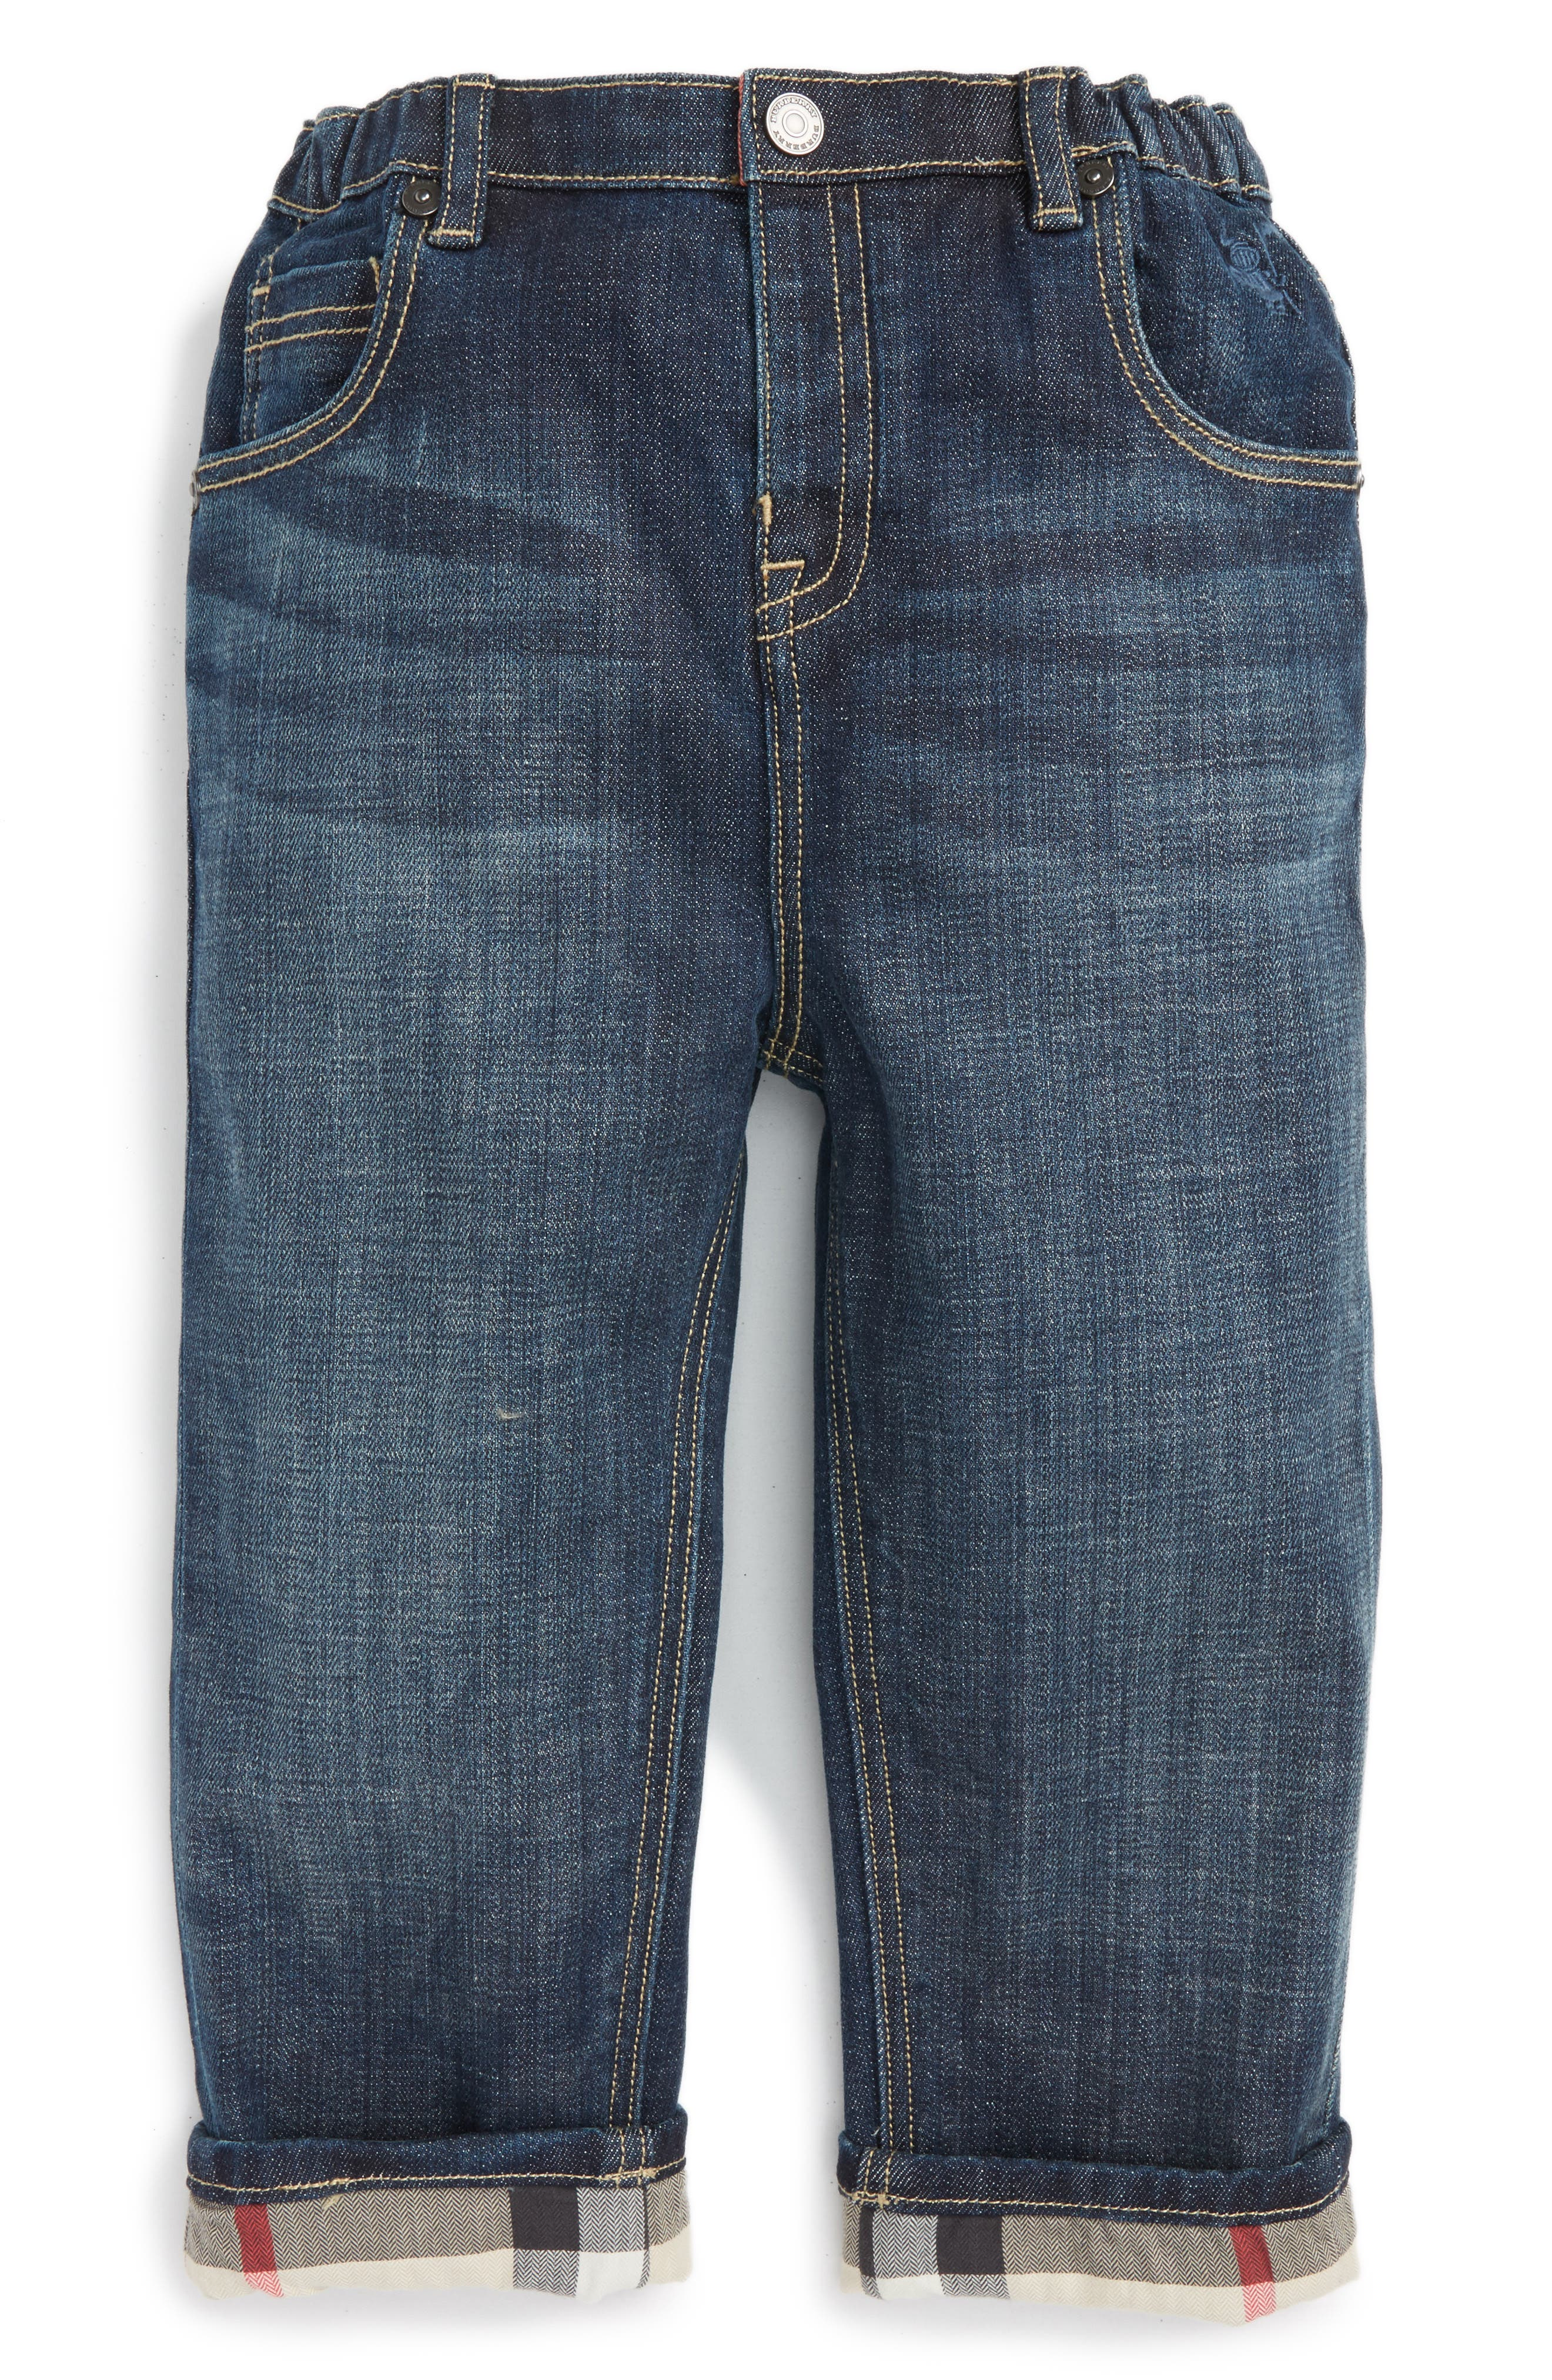 Alternate Image 1 Selected - Burberry Pierre Check Lined Jeans (Baby Boys)